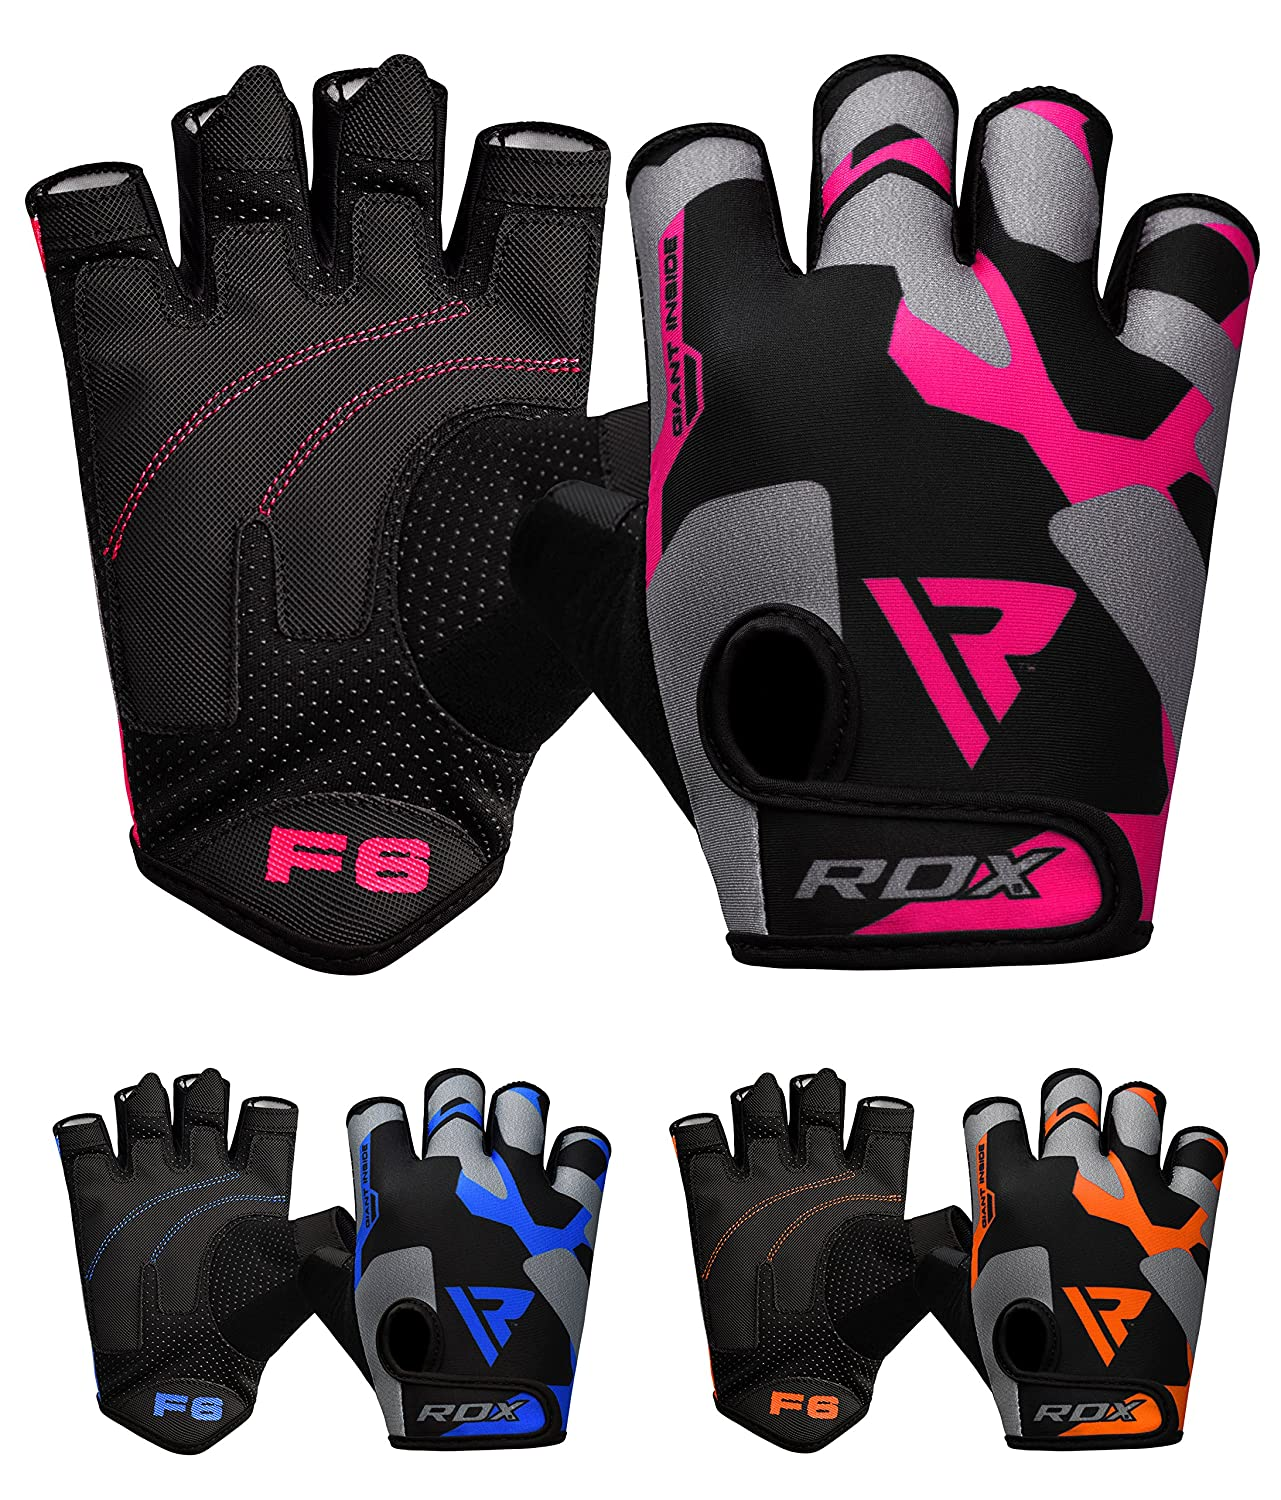 RDX Weight Lifting Gloves Workout Fitness Bodybuilding Gym Breathable Powerlifting Wrist Support Training Exercise